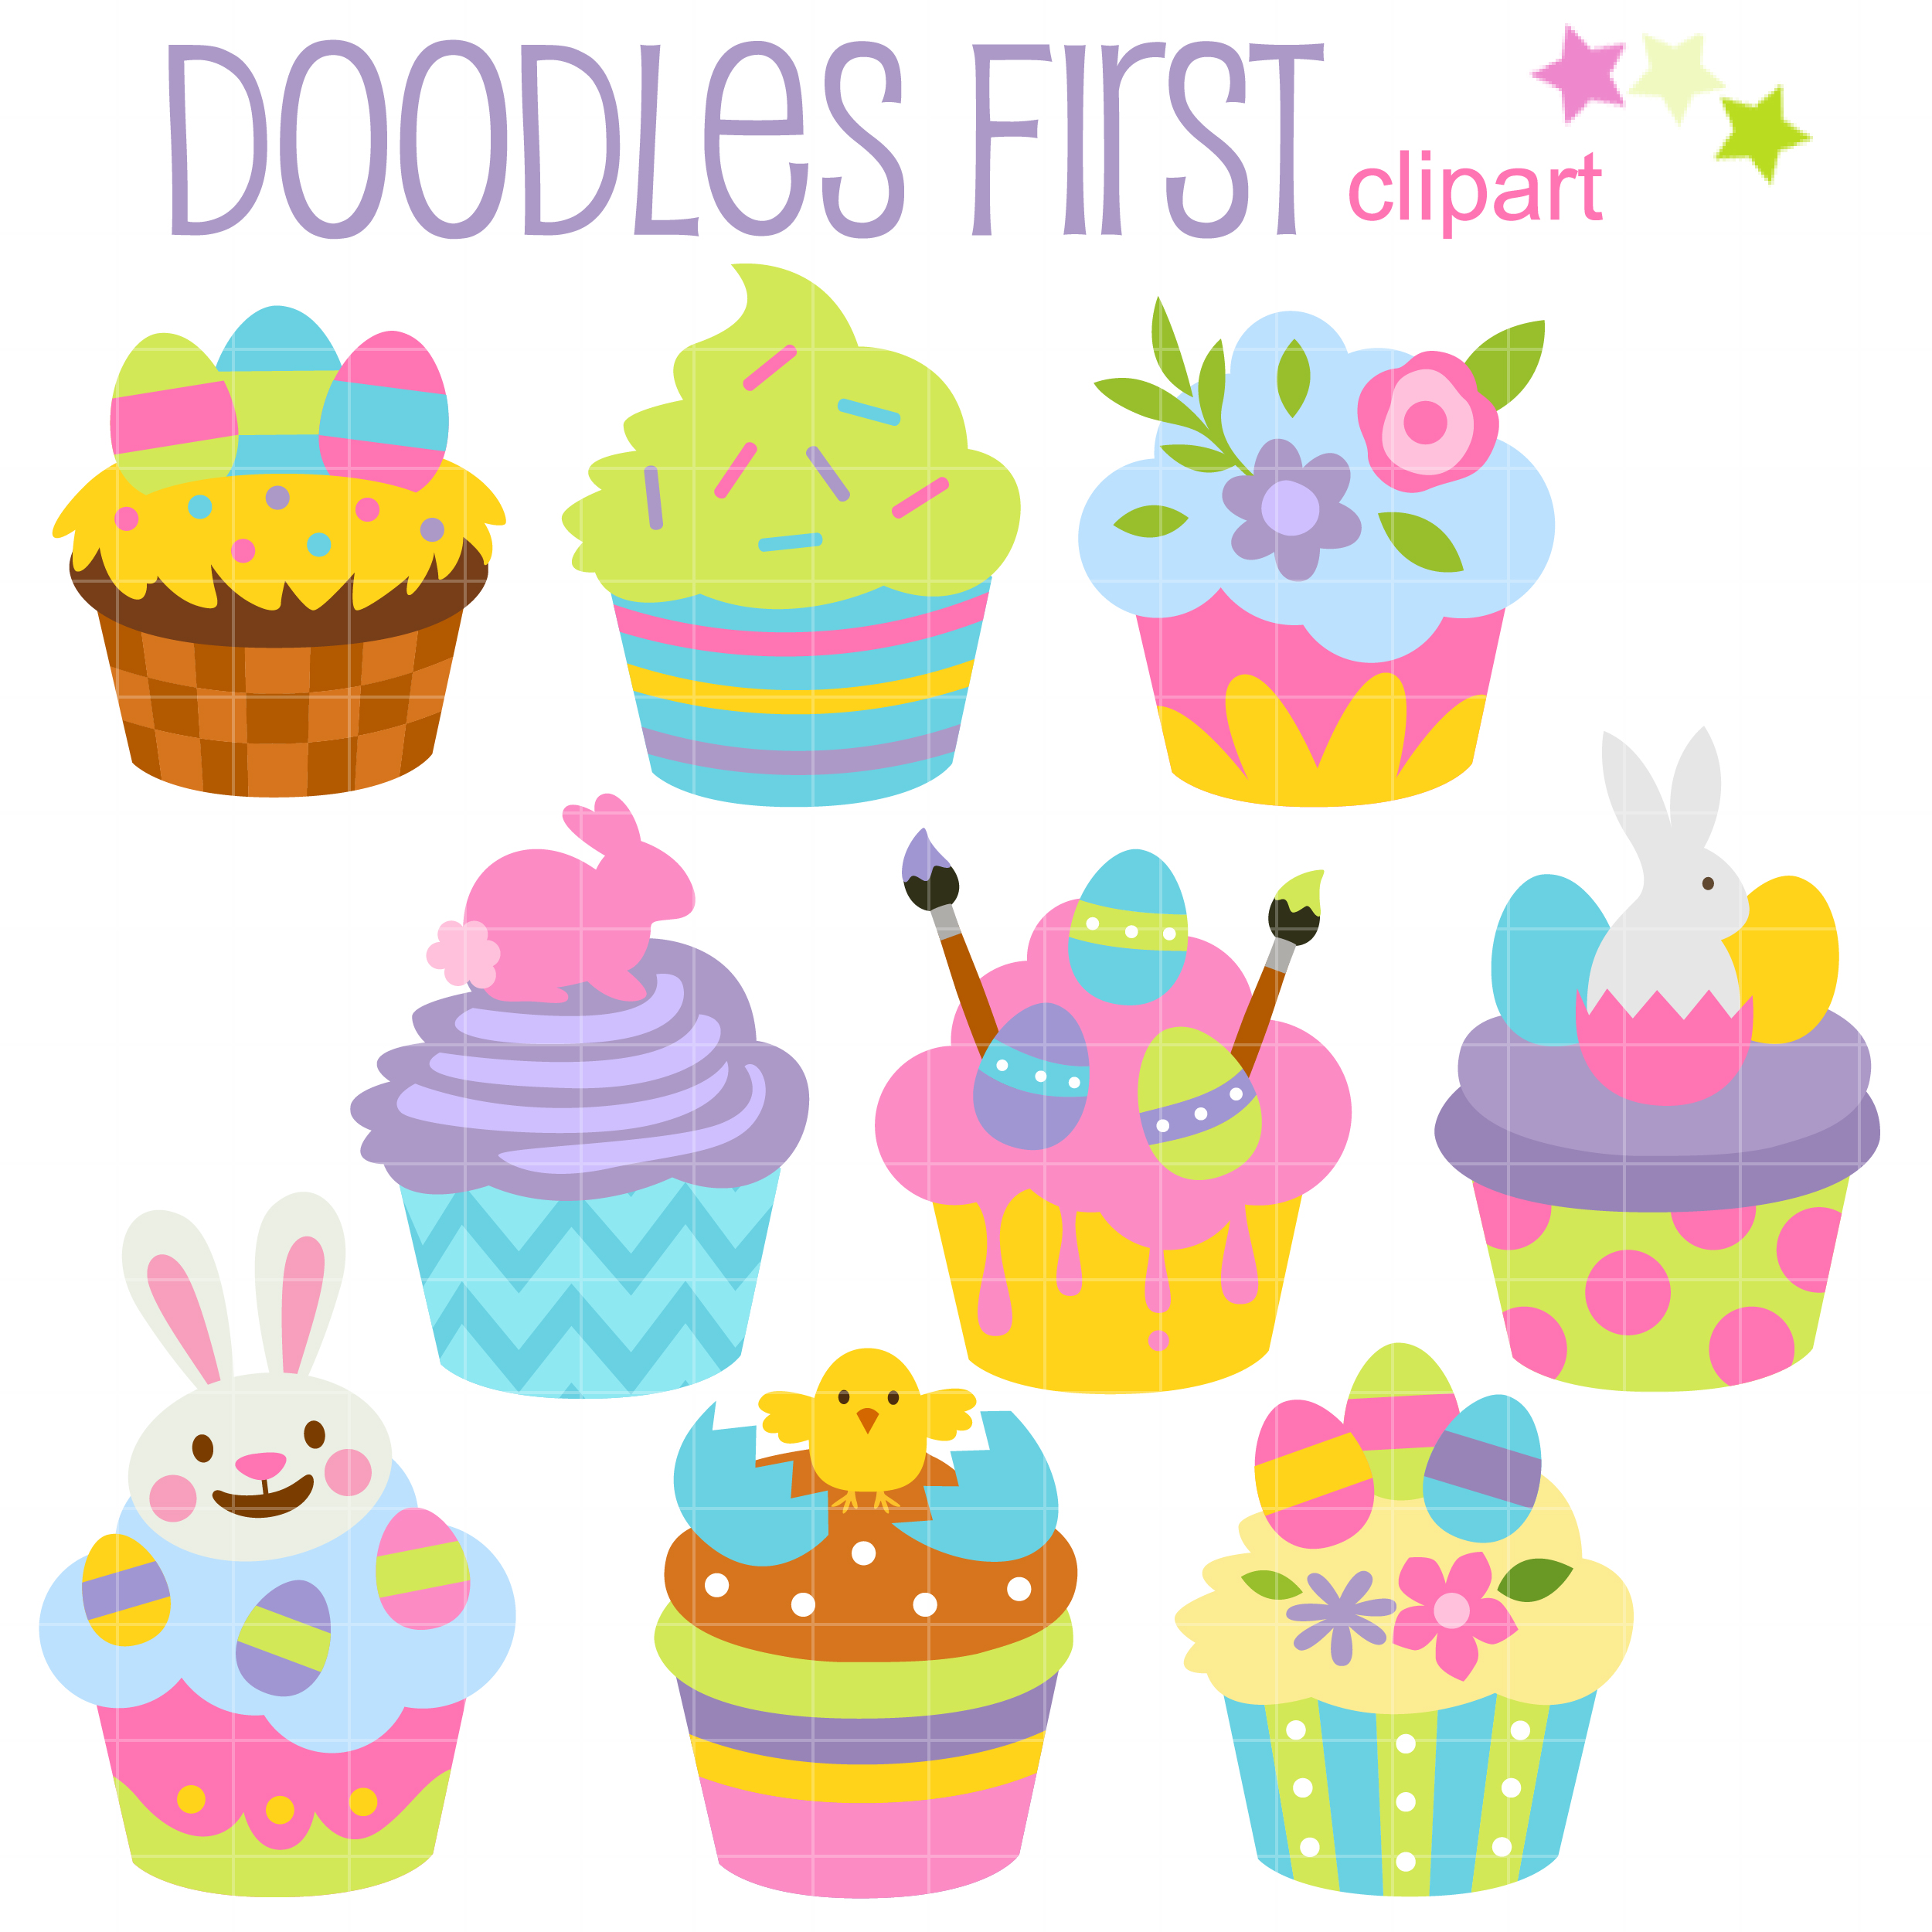 Cupcake clipart easter, Cupcake easter Transparent FREE for.